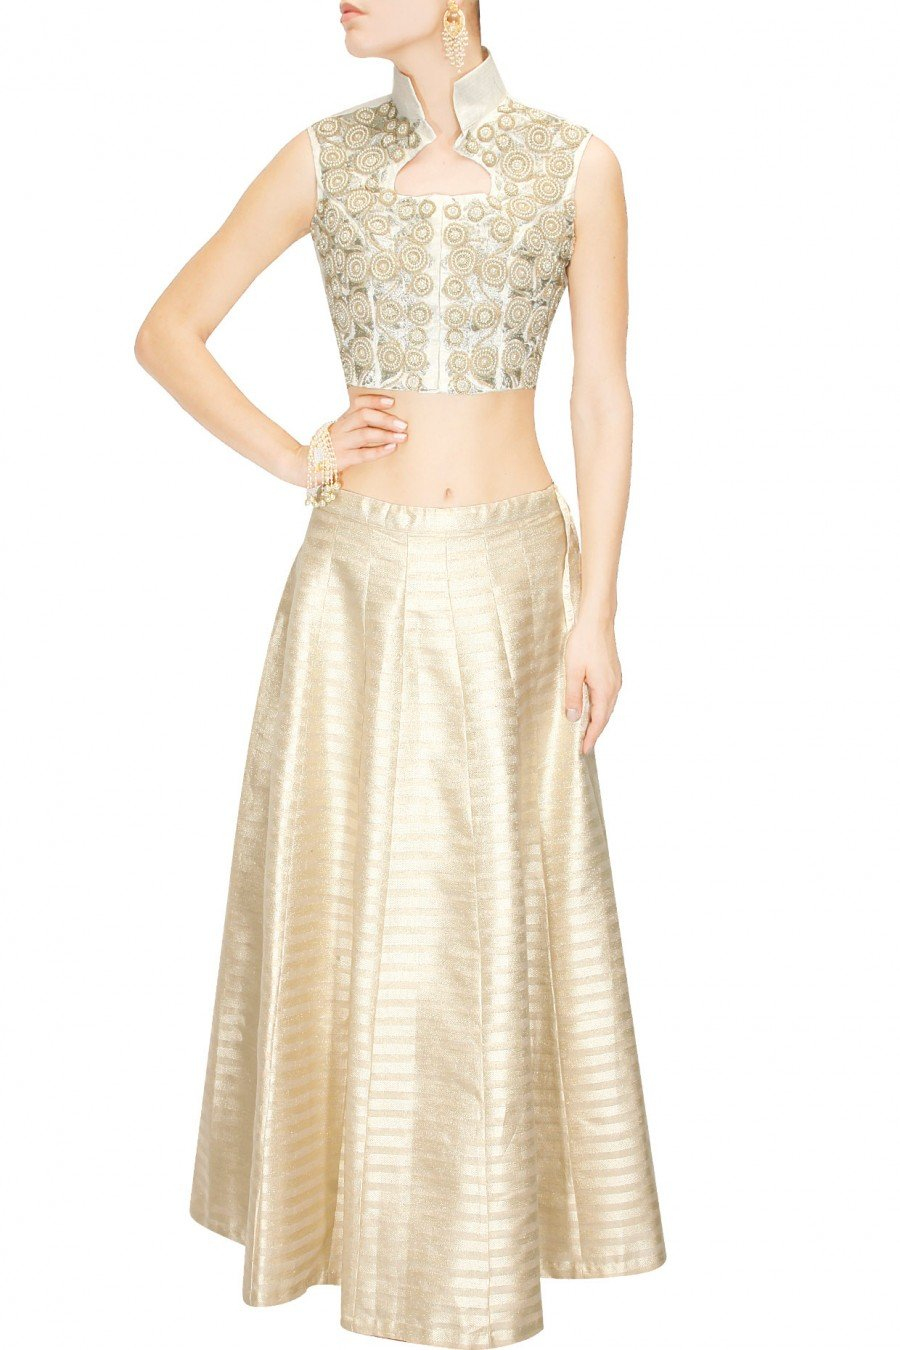 Ivory Crop top with light gold skirt lehanga.